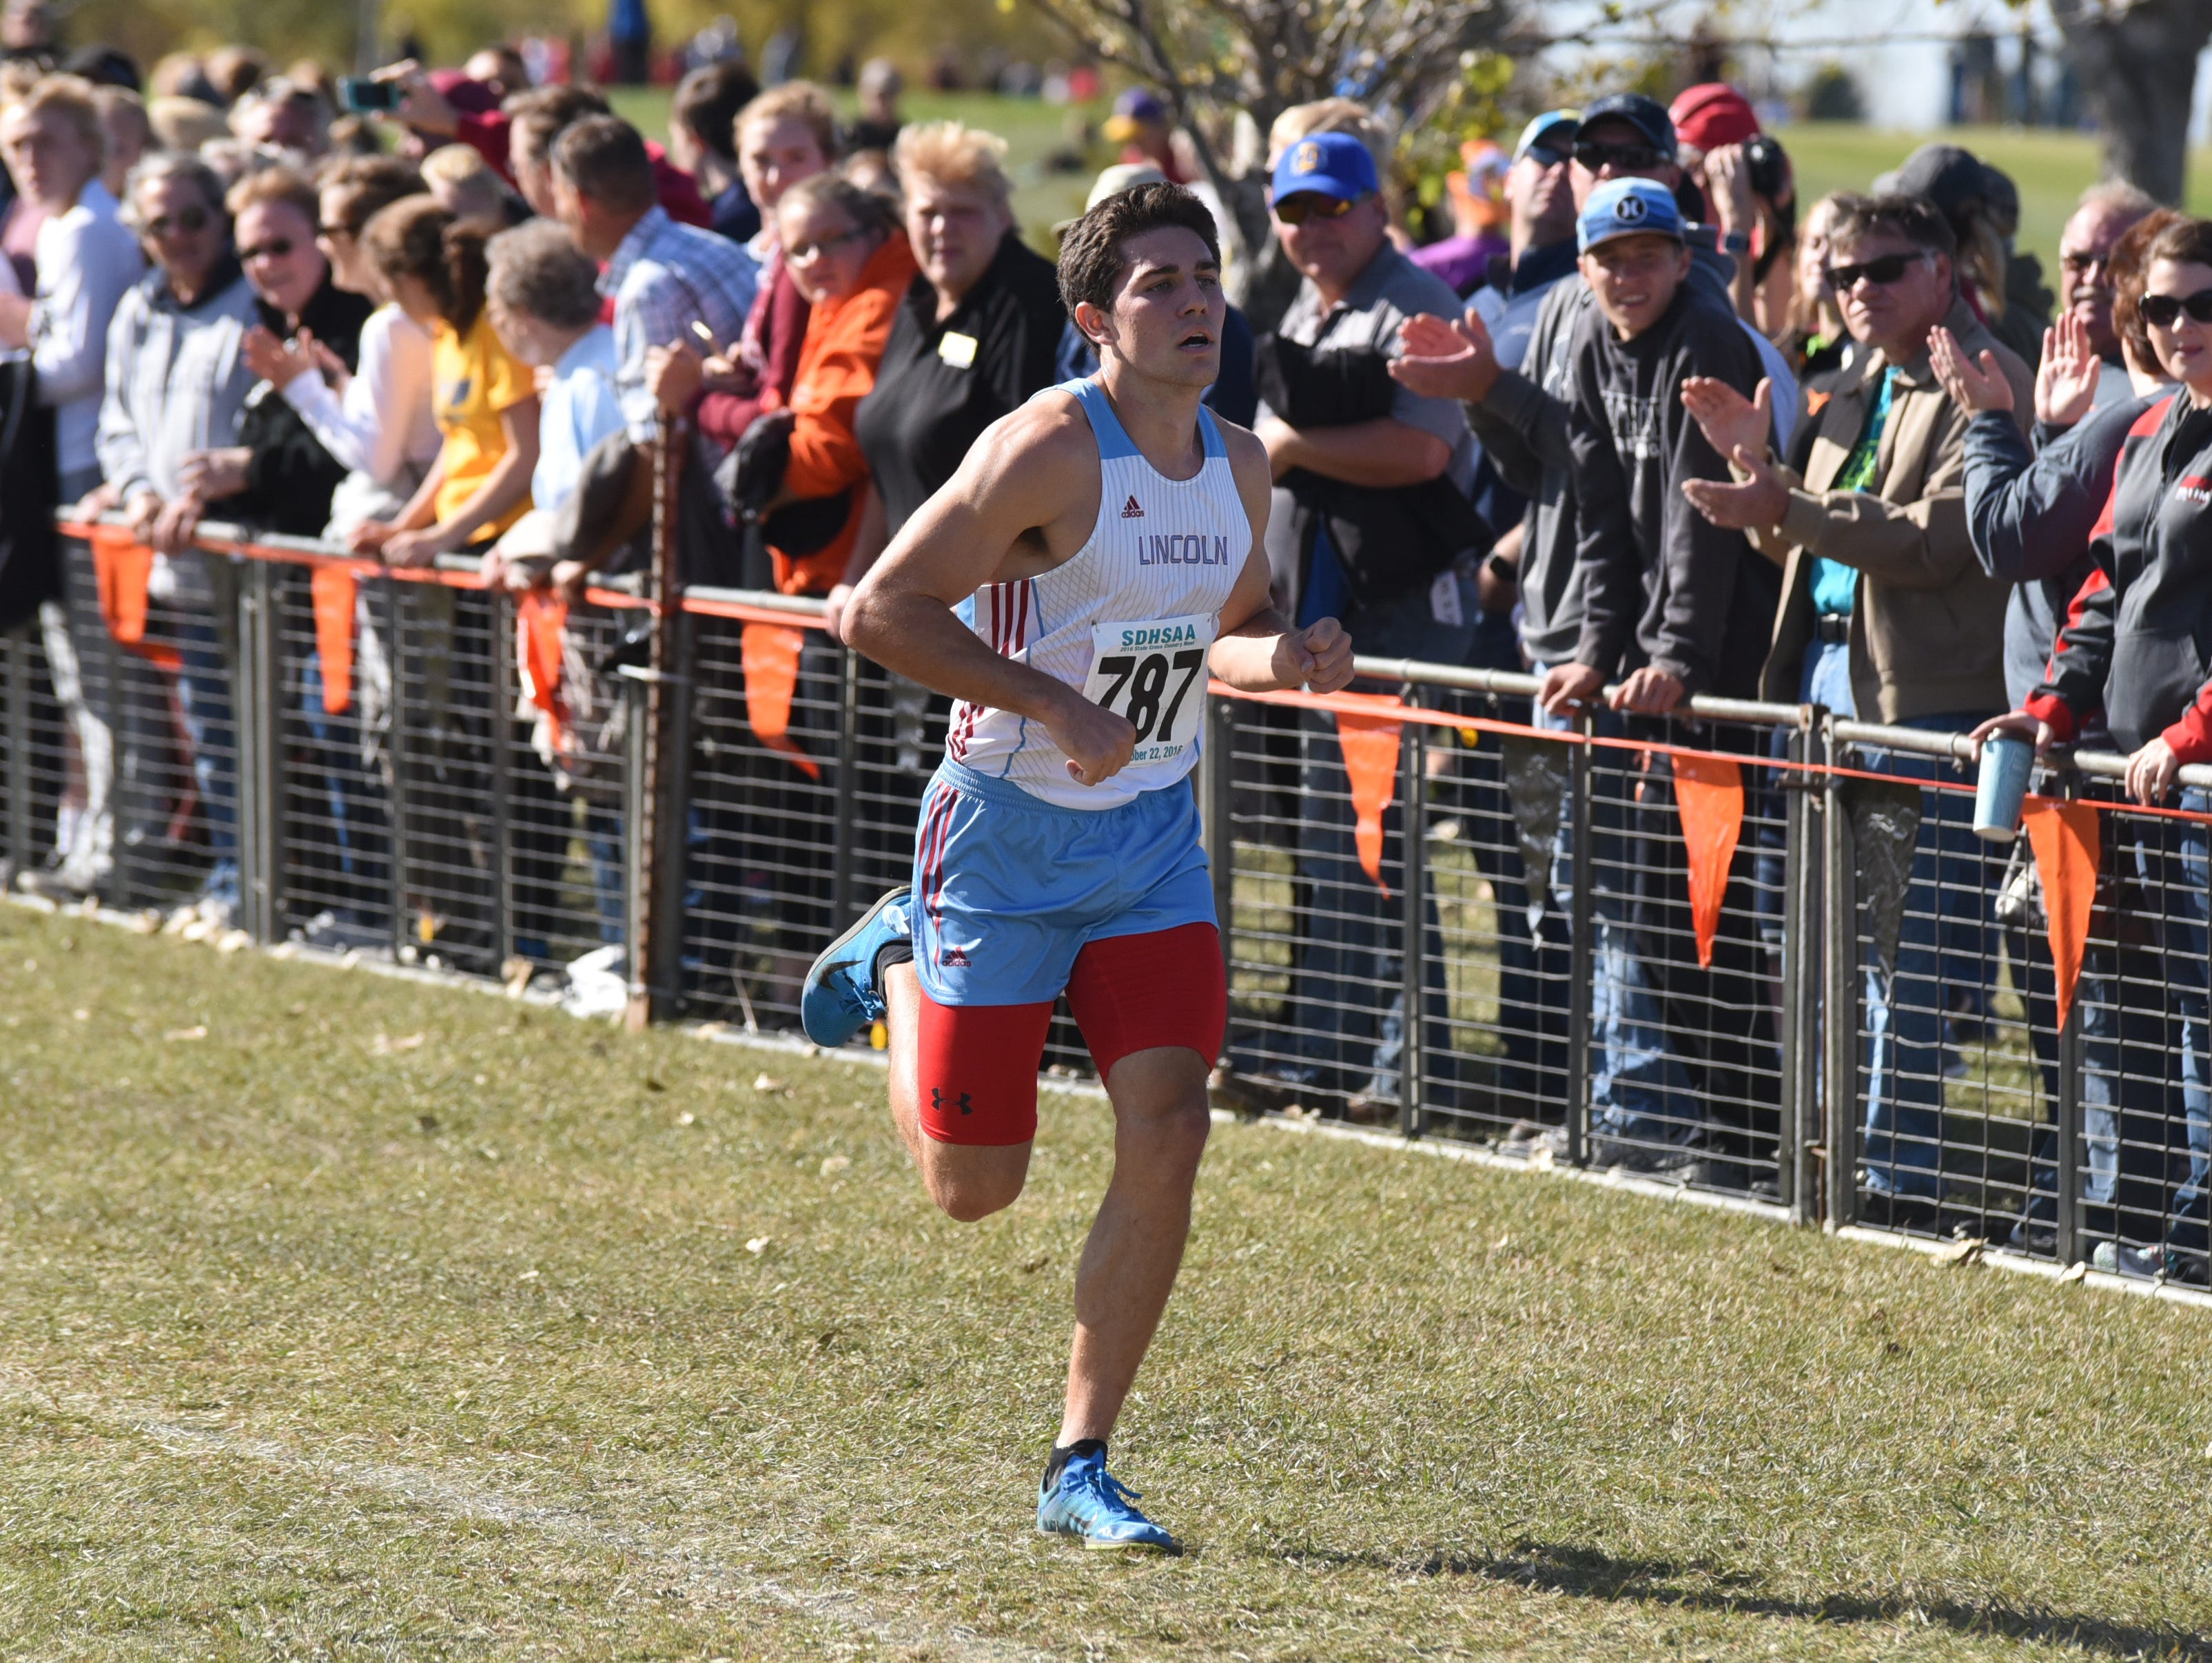 Sioux Falls Lincoln senior Gabe Peters races to victory in the Class AA boys' race at the South Dakota State Cross Country Meet on Saturday in Huron. Peters defended his individual title and led the Patriots to the team title.